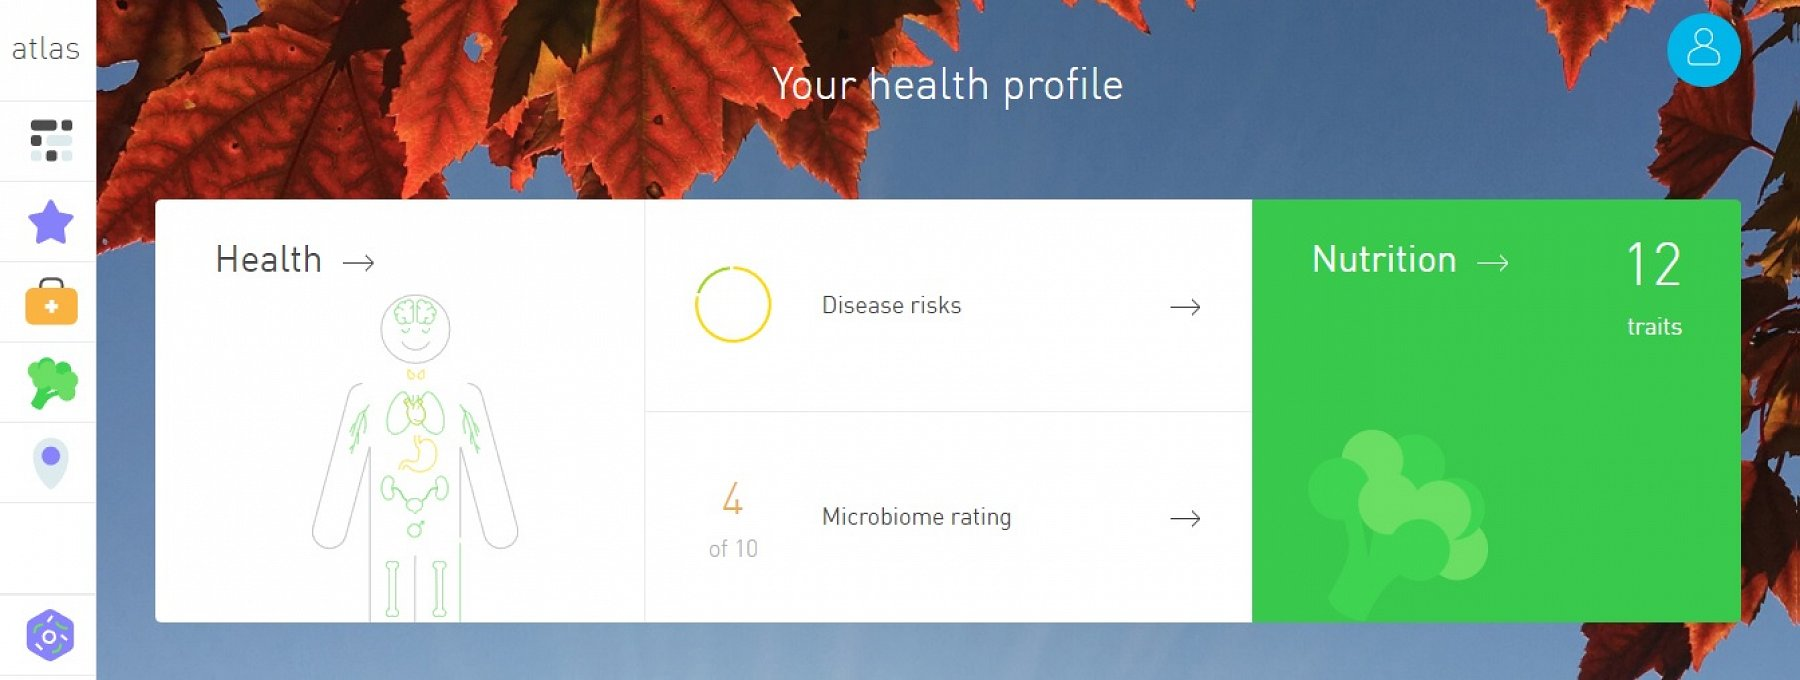 My Health Profile homepage.